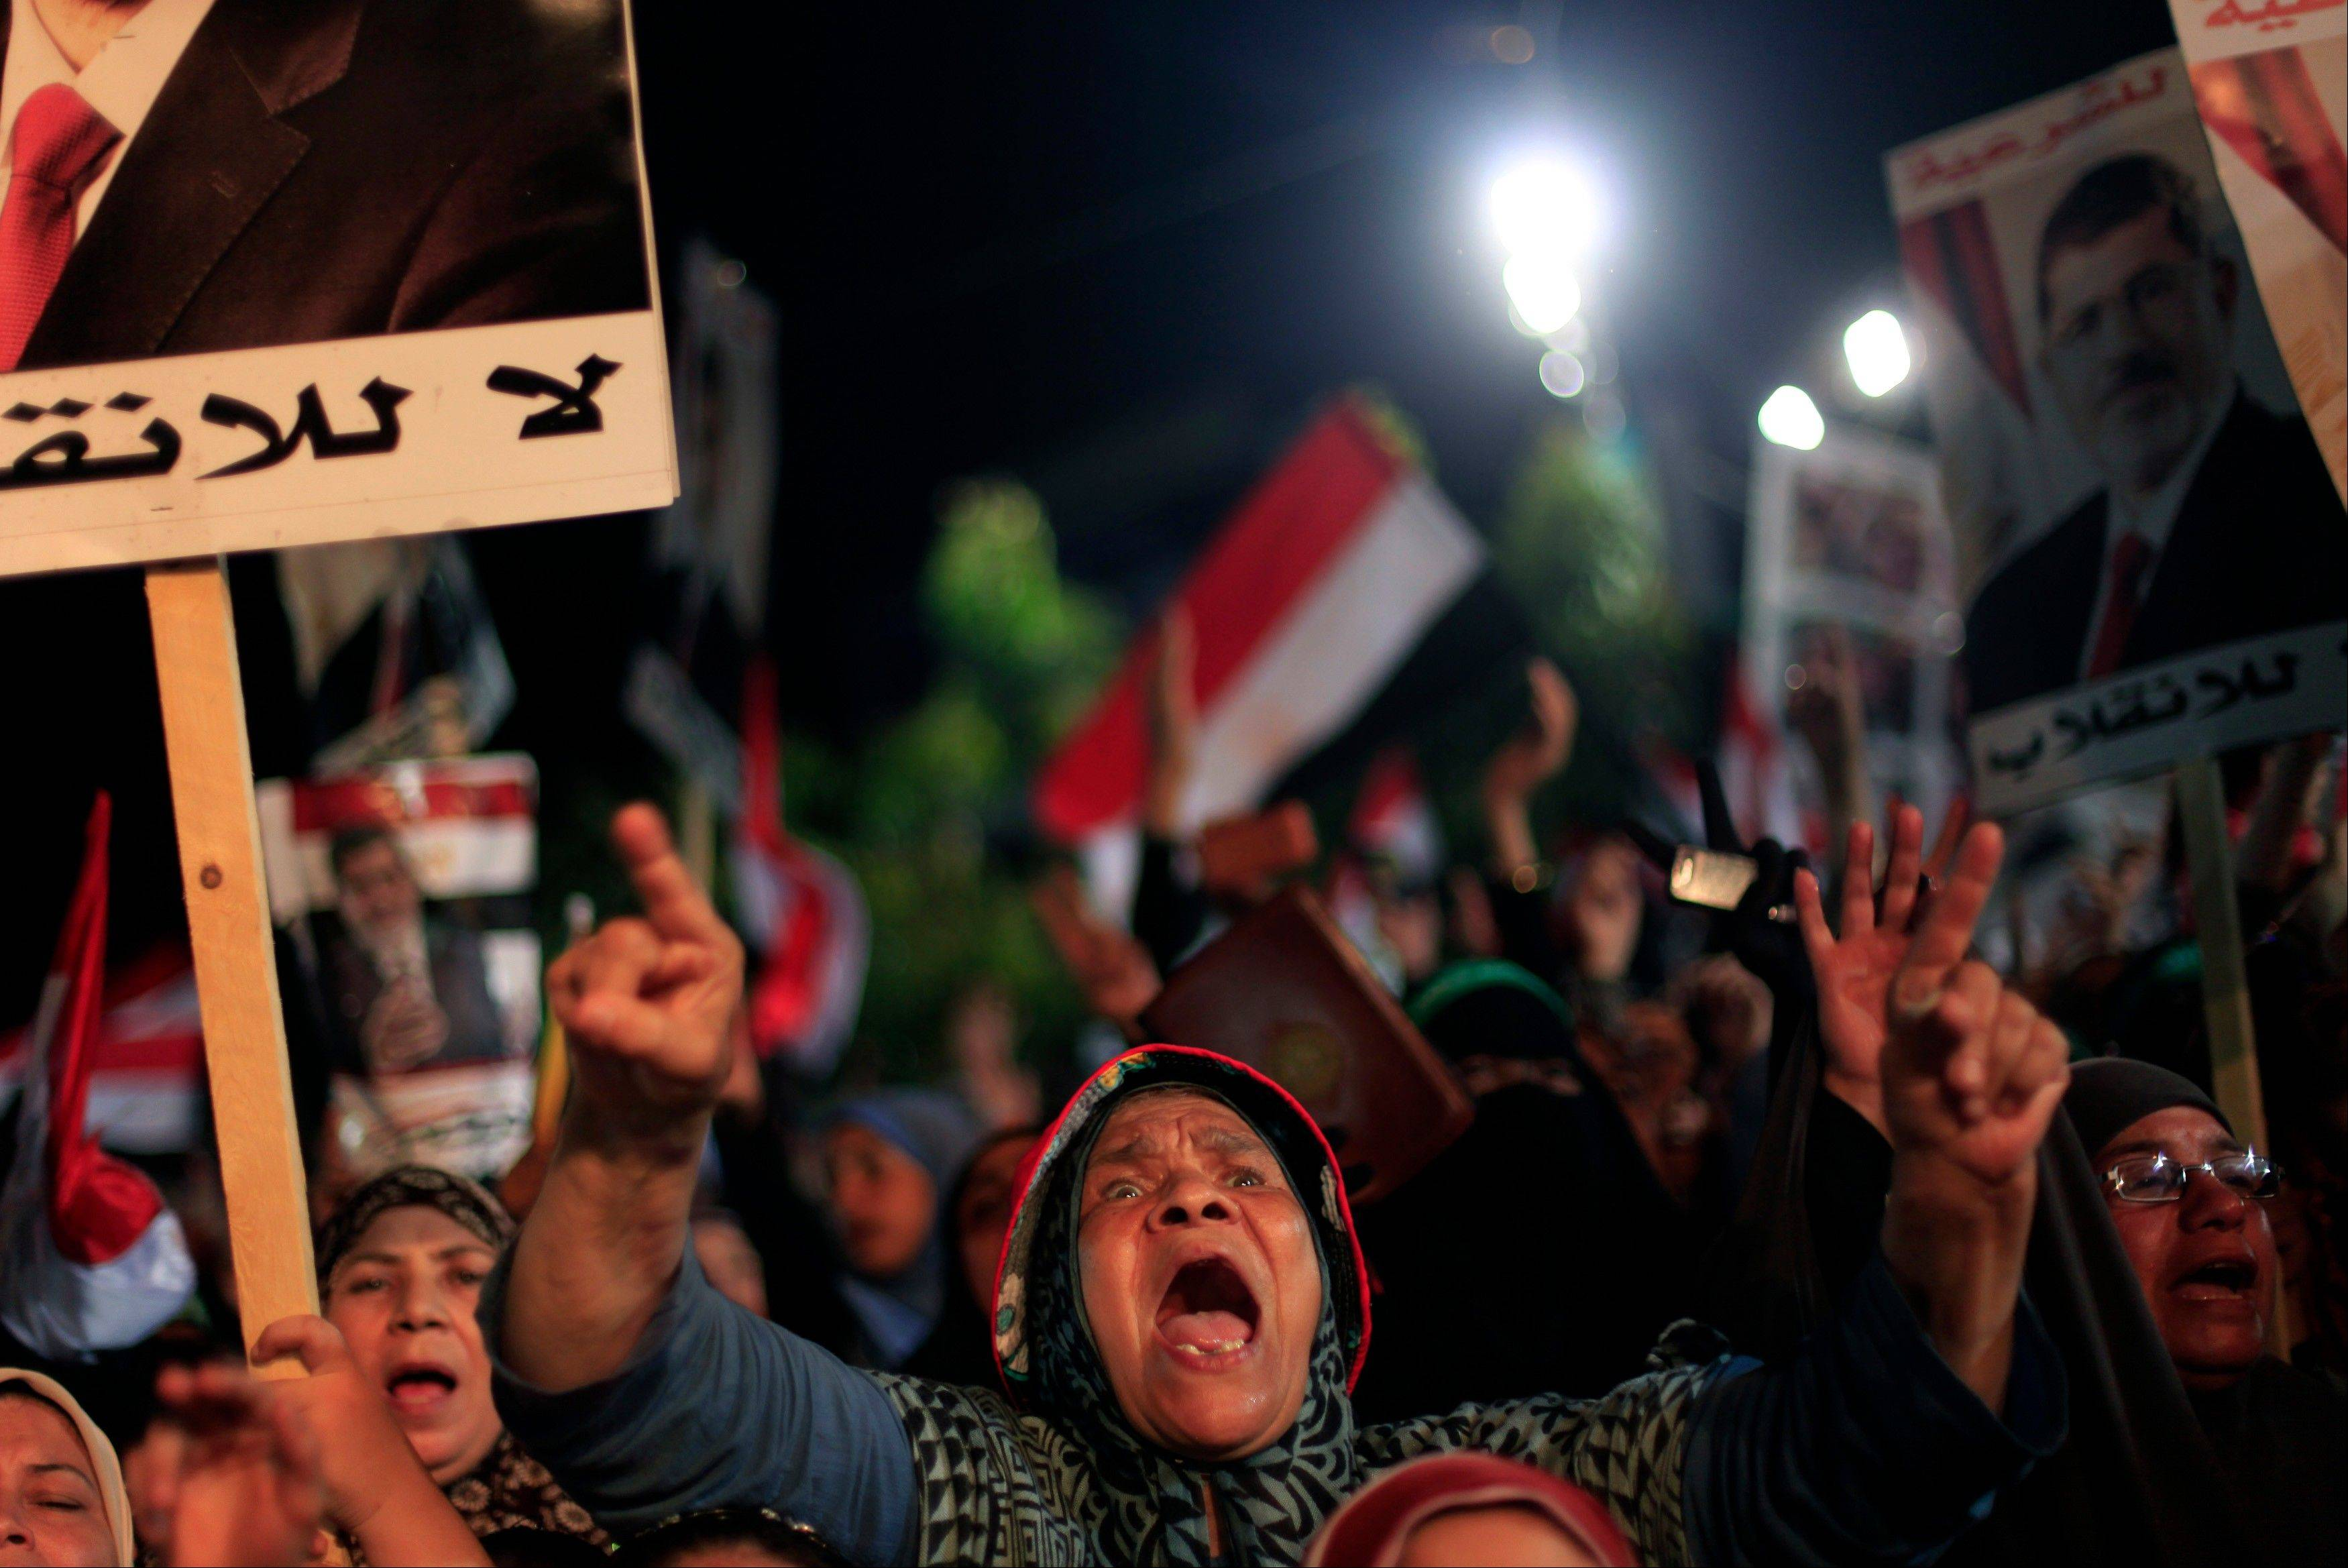 Supporters of Egypt�s ousted President Mohammed Morsi chant slogans and hold his posters with Arabic writing which reads �Yes for legality, No for the coup� during a protest outside Rabaah al-Adawiya mosque, where protesters have installed a camp and hold daily rallies.